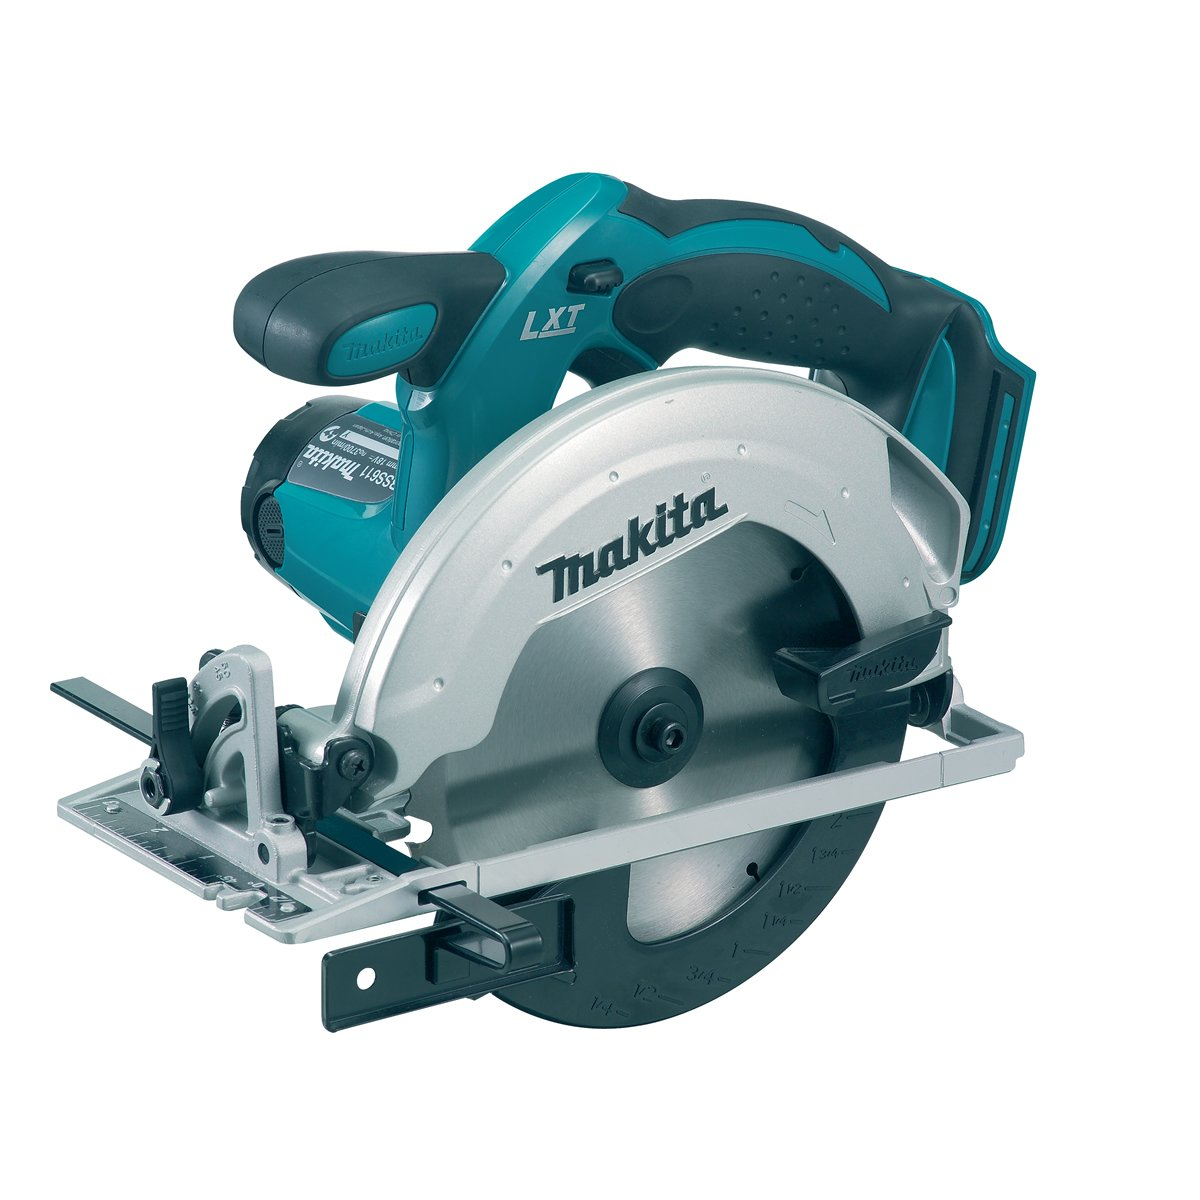 Makita 18v Circular Saw